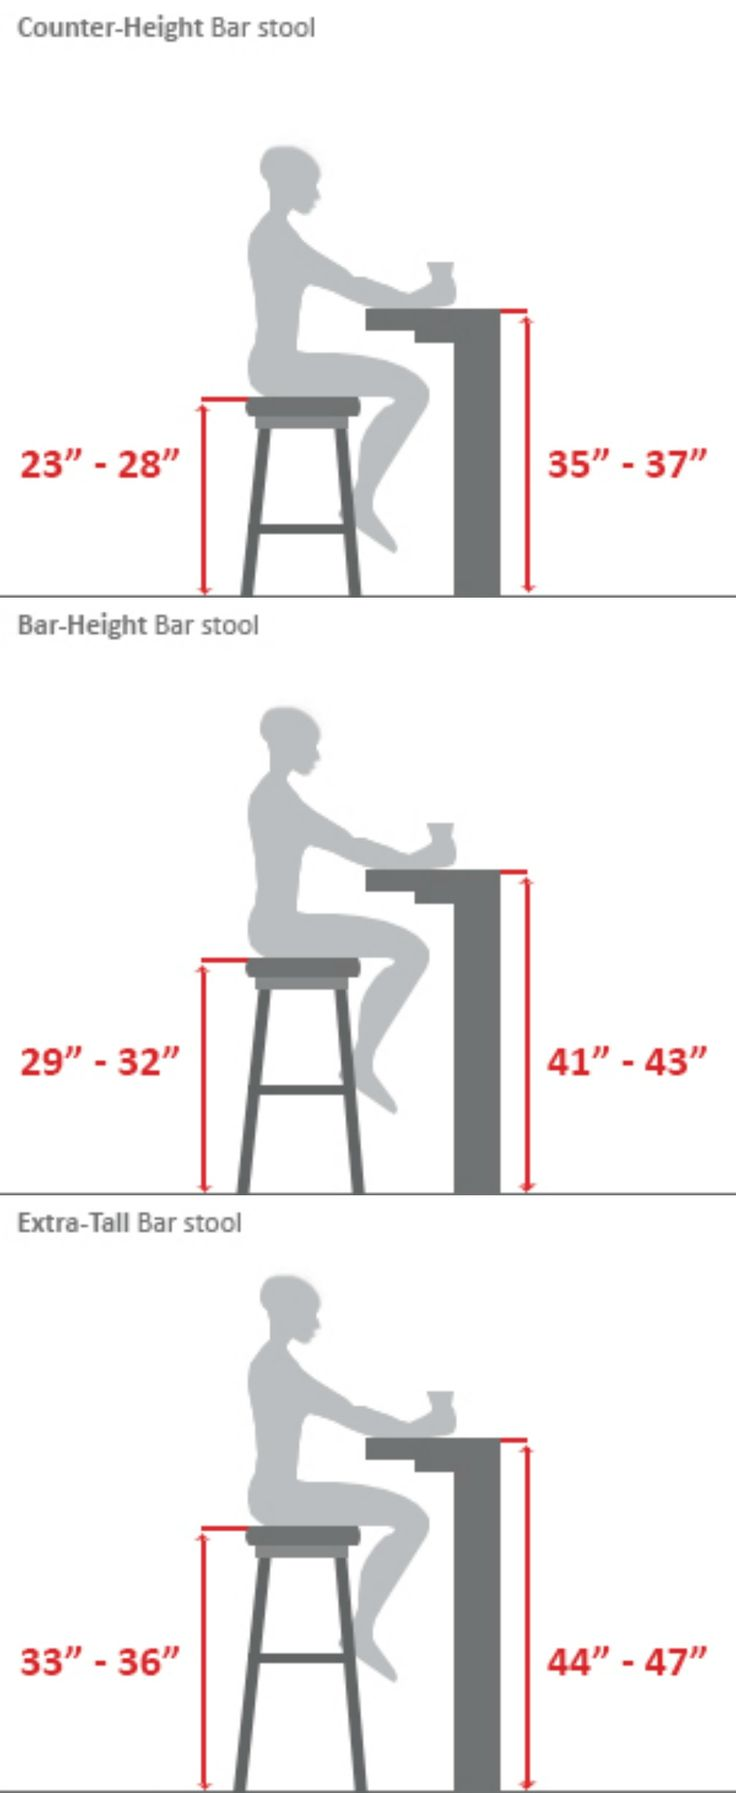 Bar Stool Guide. Or the builder's guide. When building desks, tables or bars these measurements come in handy.